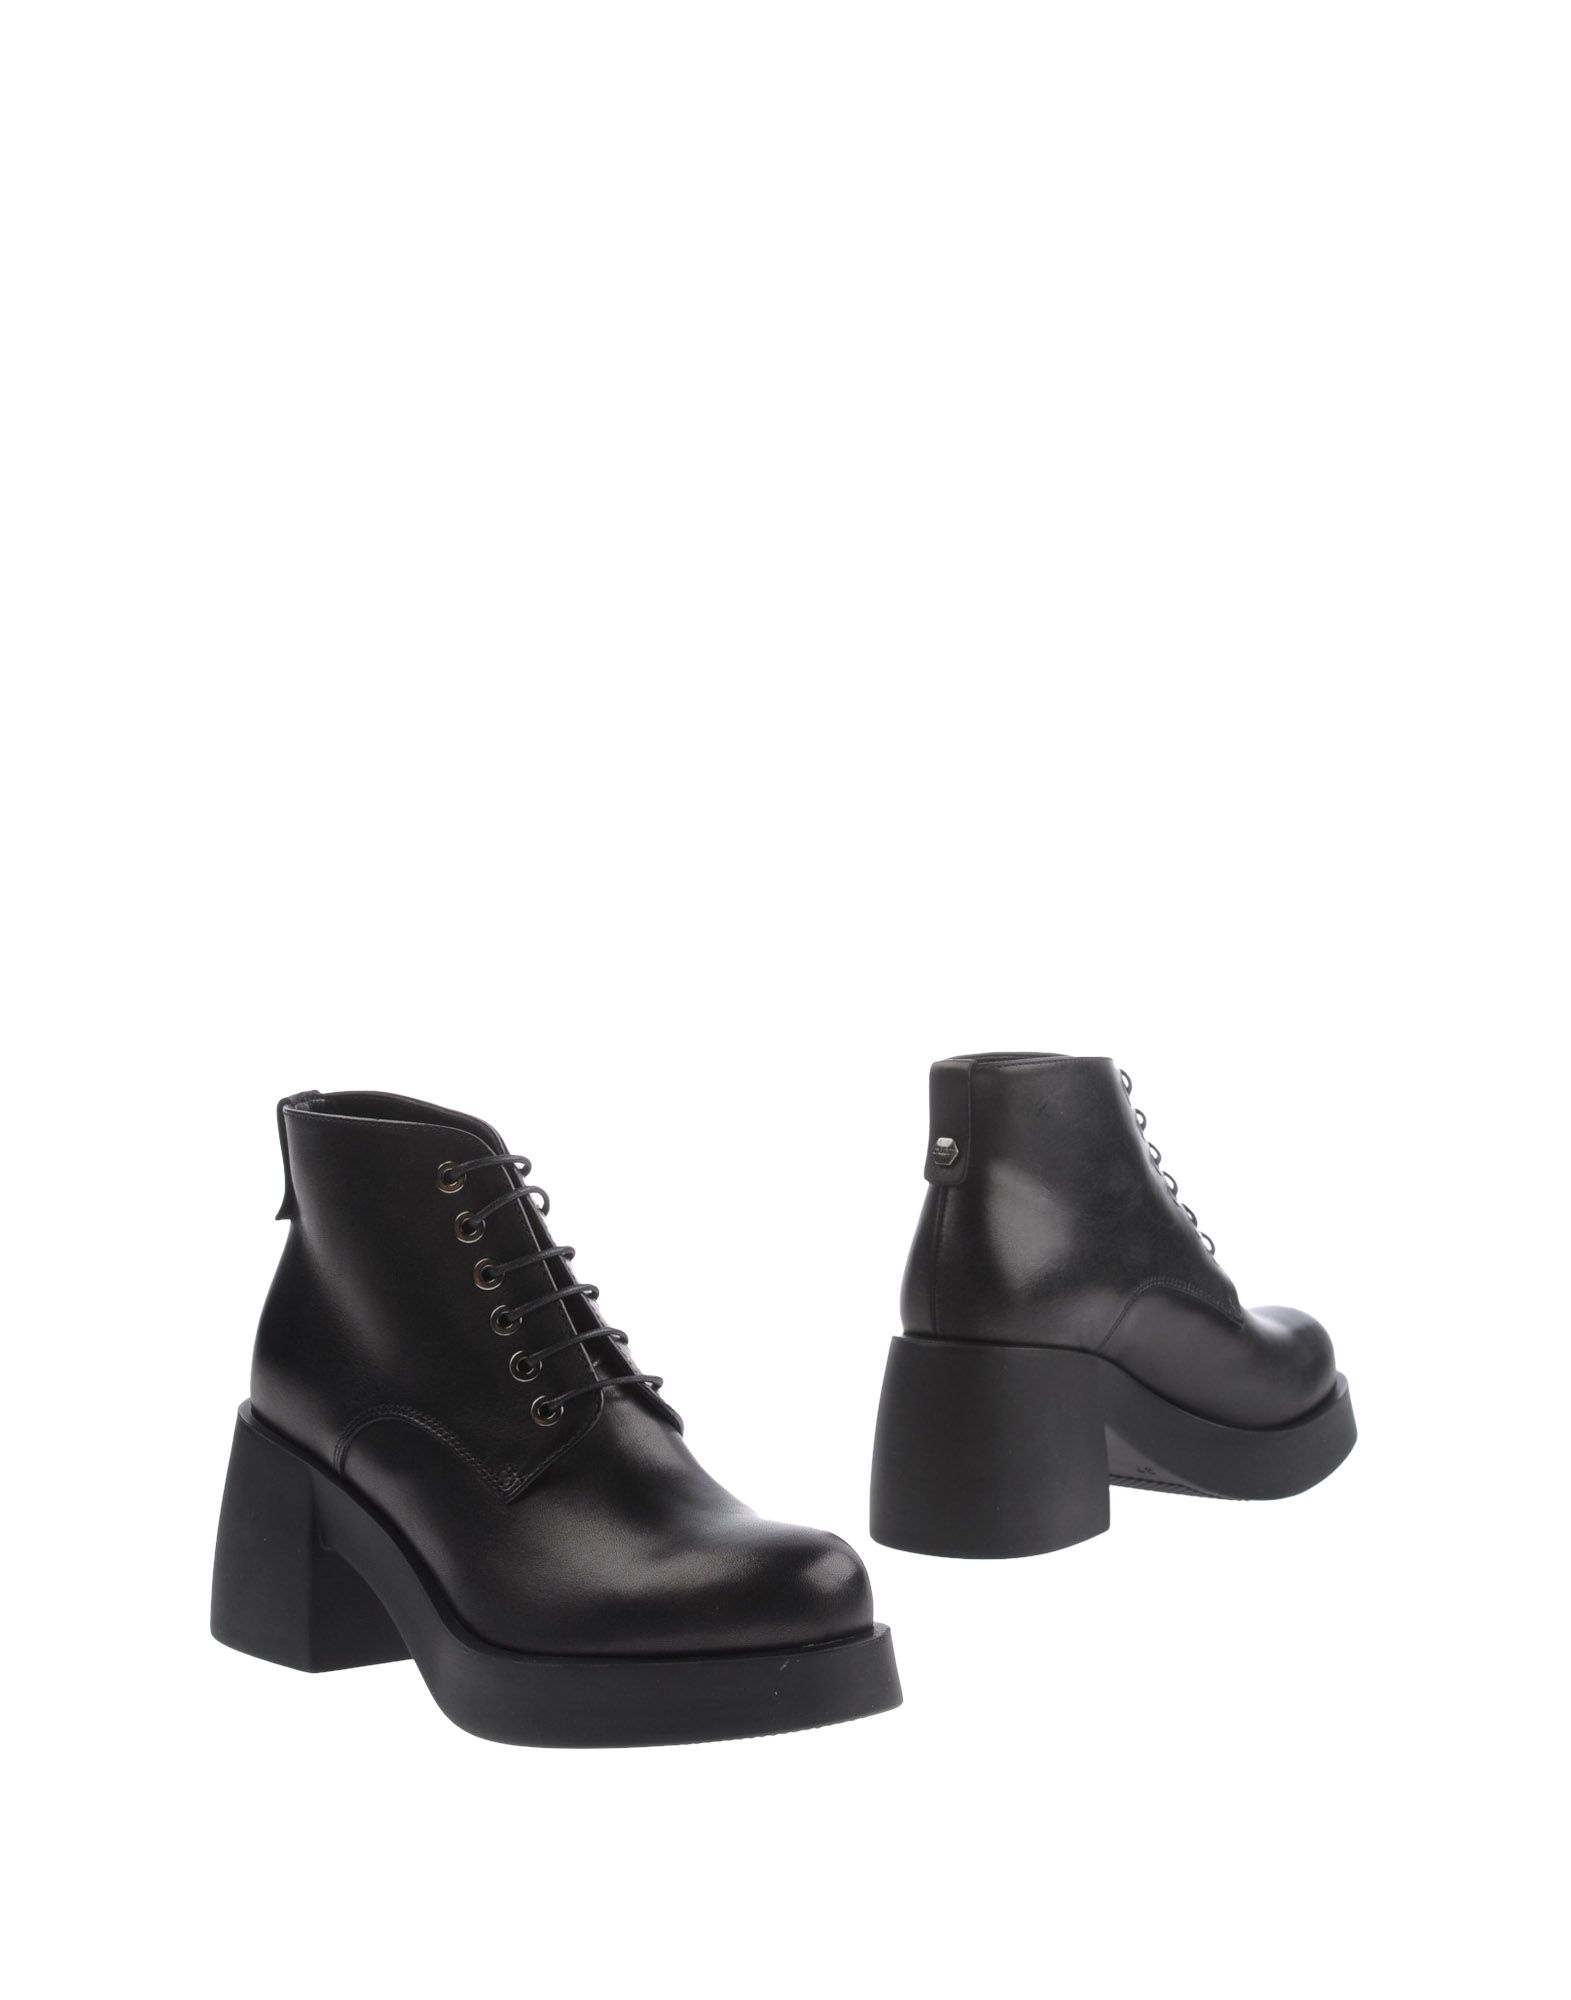 Bottine Cult Femme - Bottines Cult sur